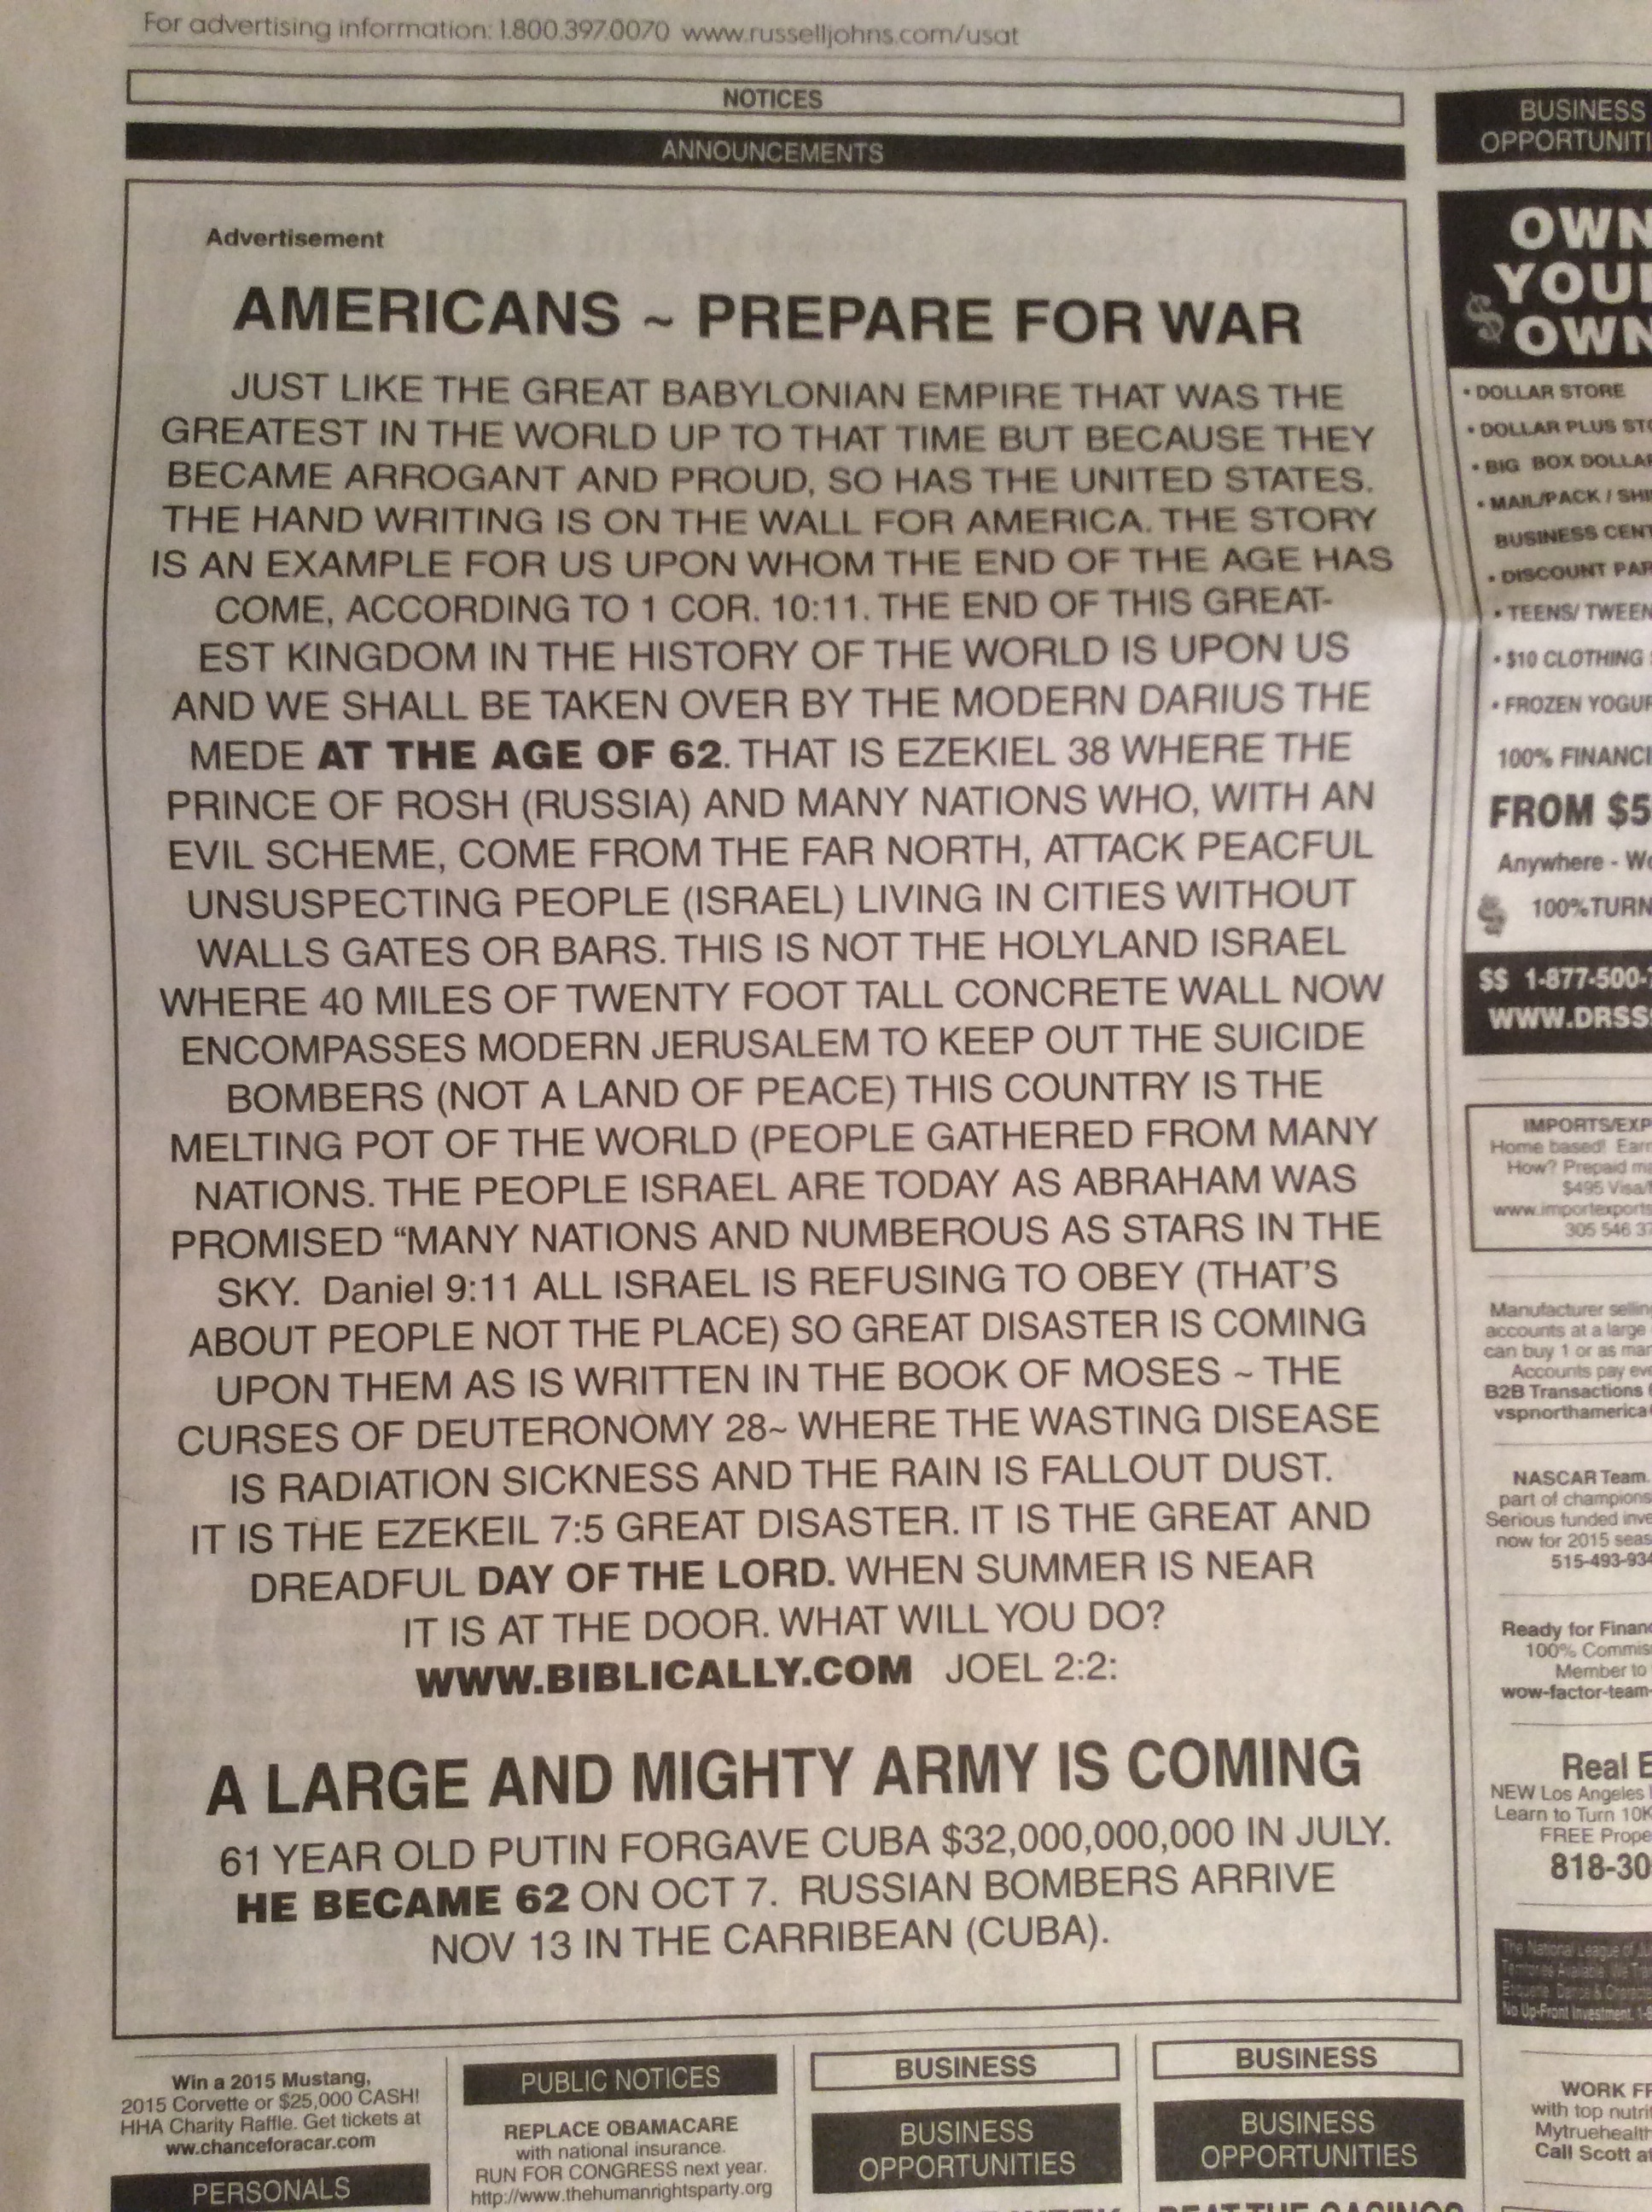 America Prepare for War from USA Today 3-20-2015